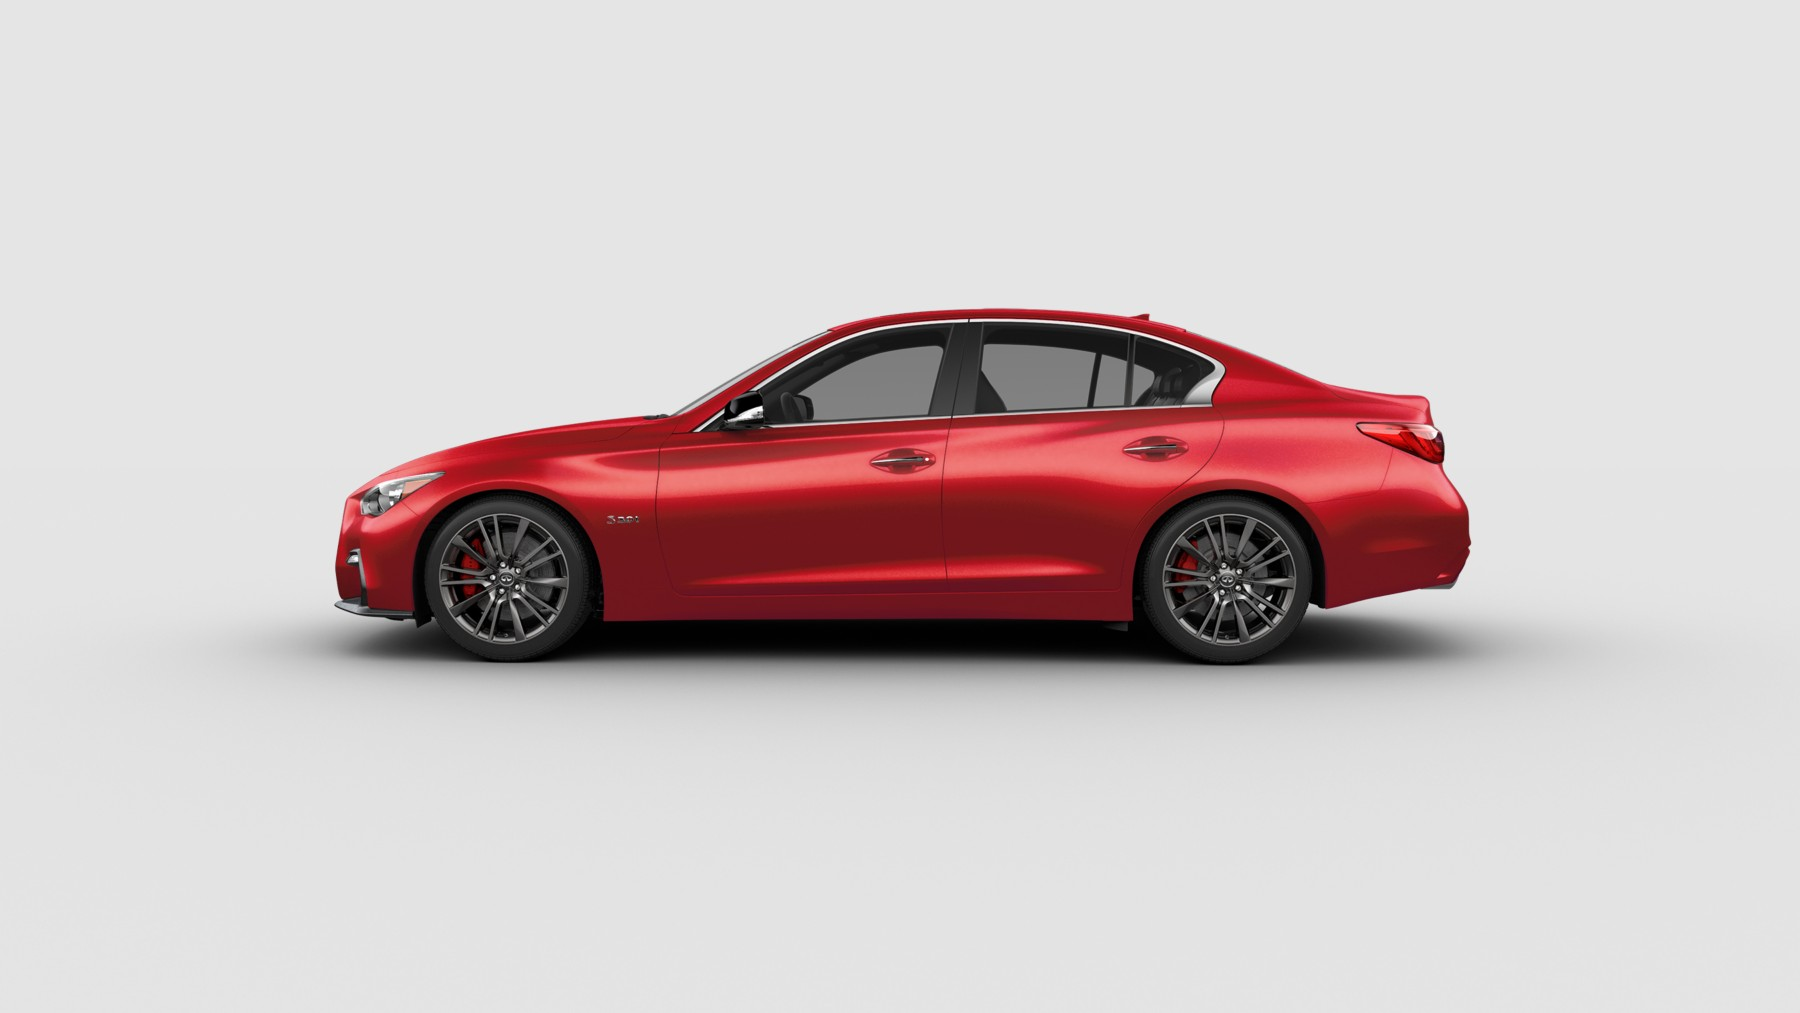 2019 Q50 RED SPORT 400